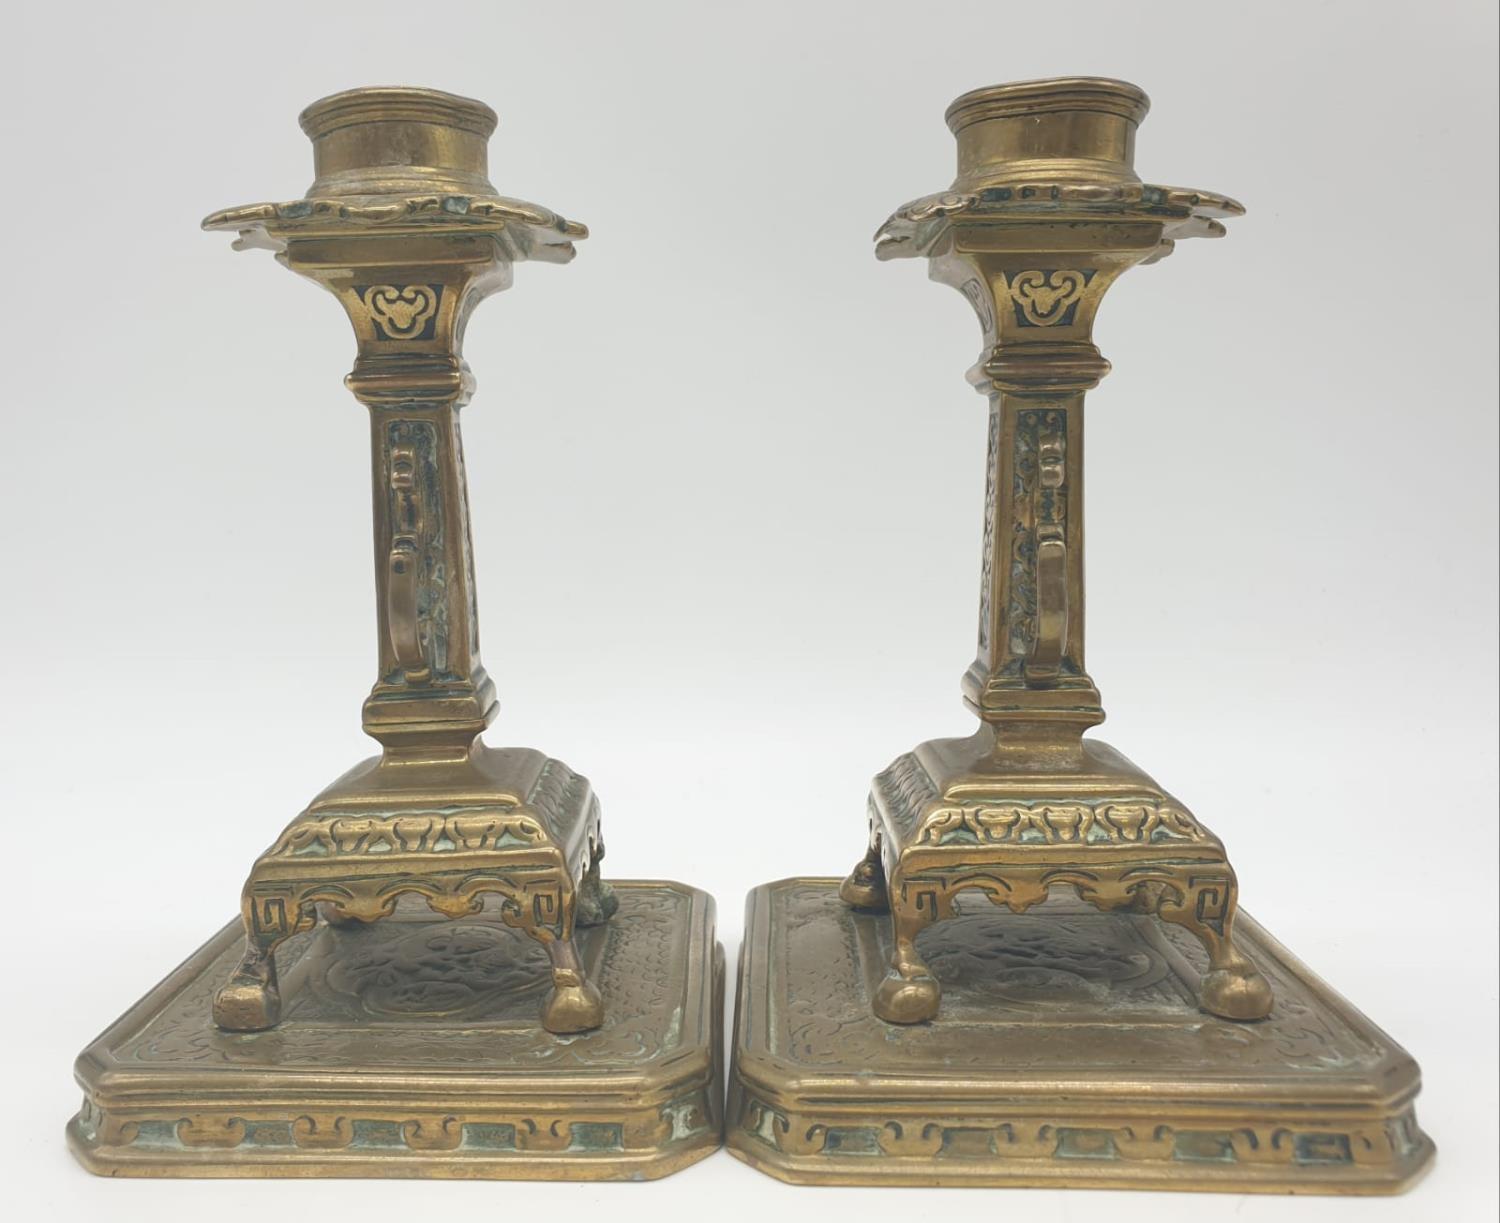 Pair of 19th century Chinese cast candlesticks 16cm tall - Image 2 of 7